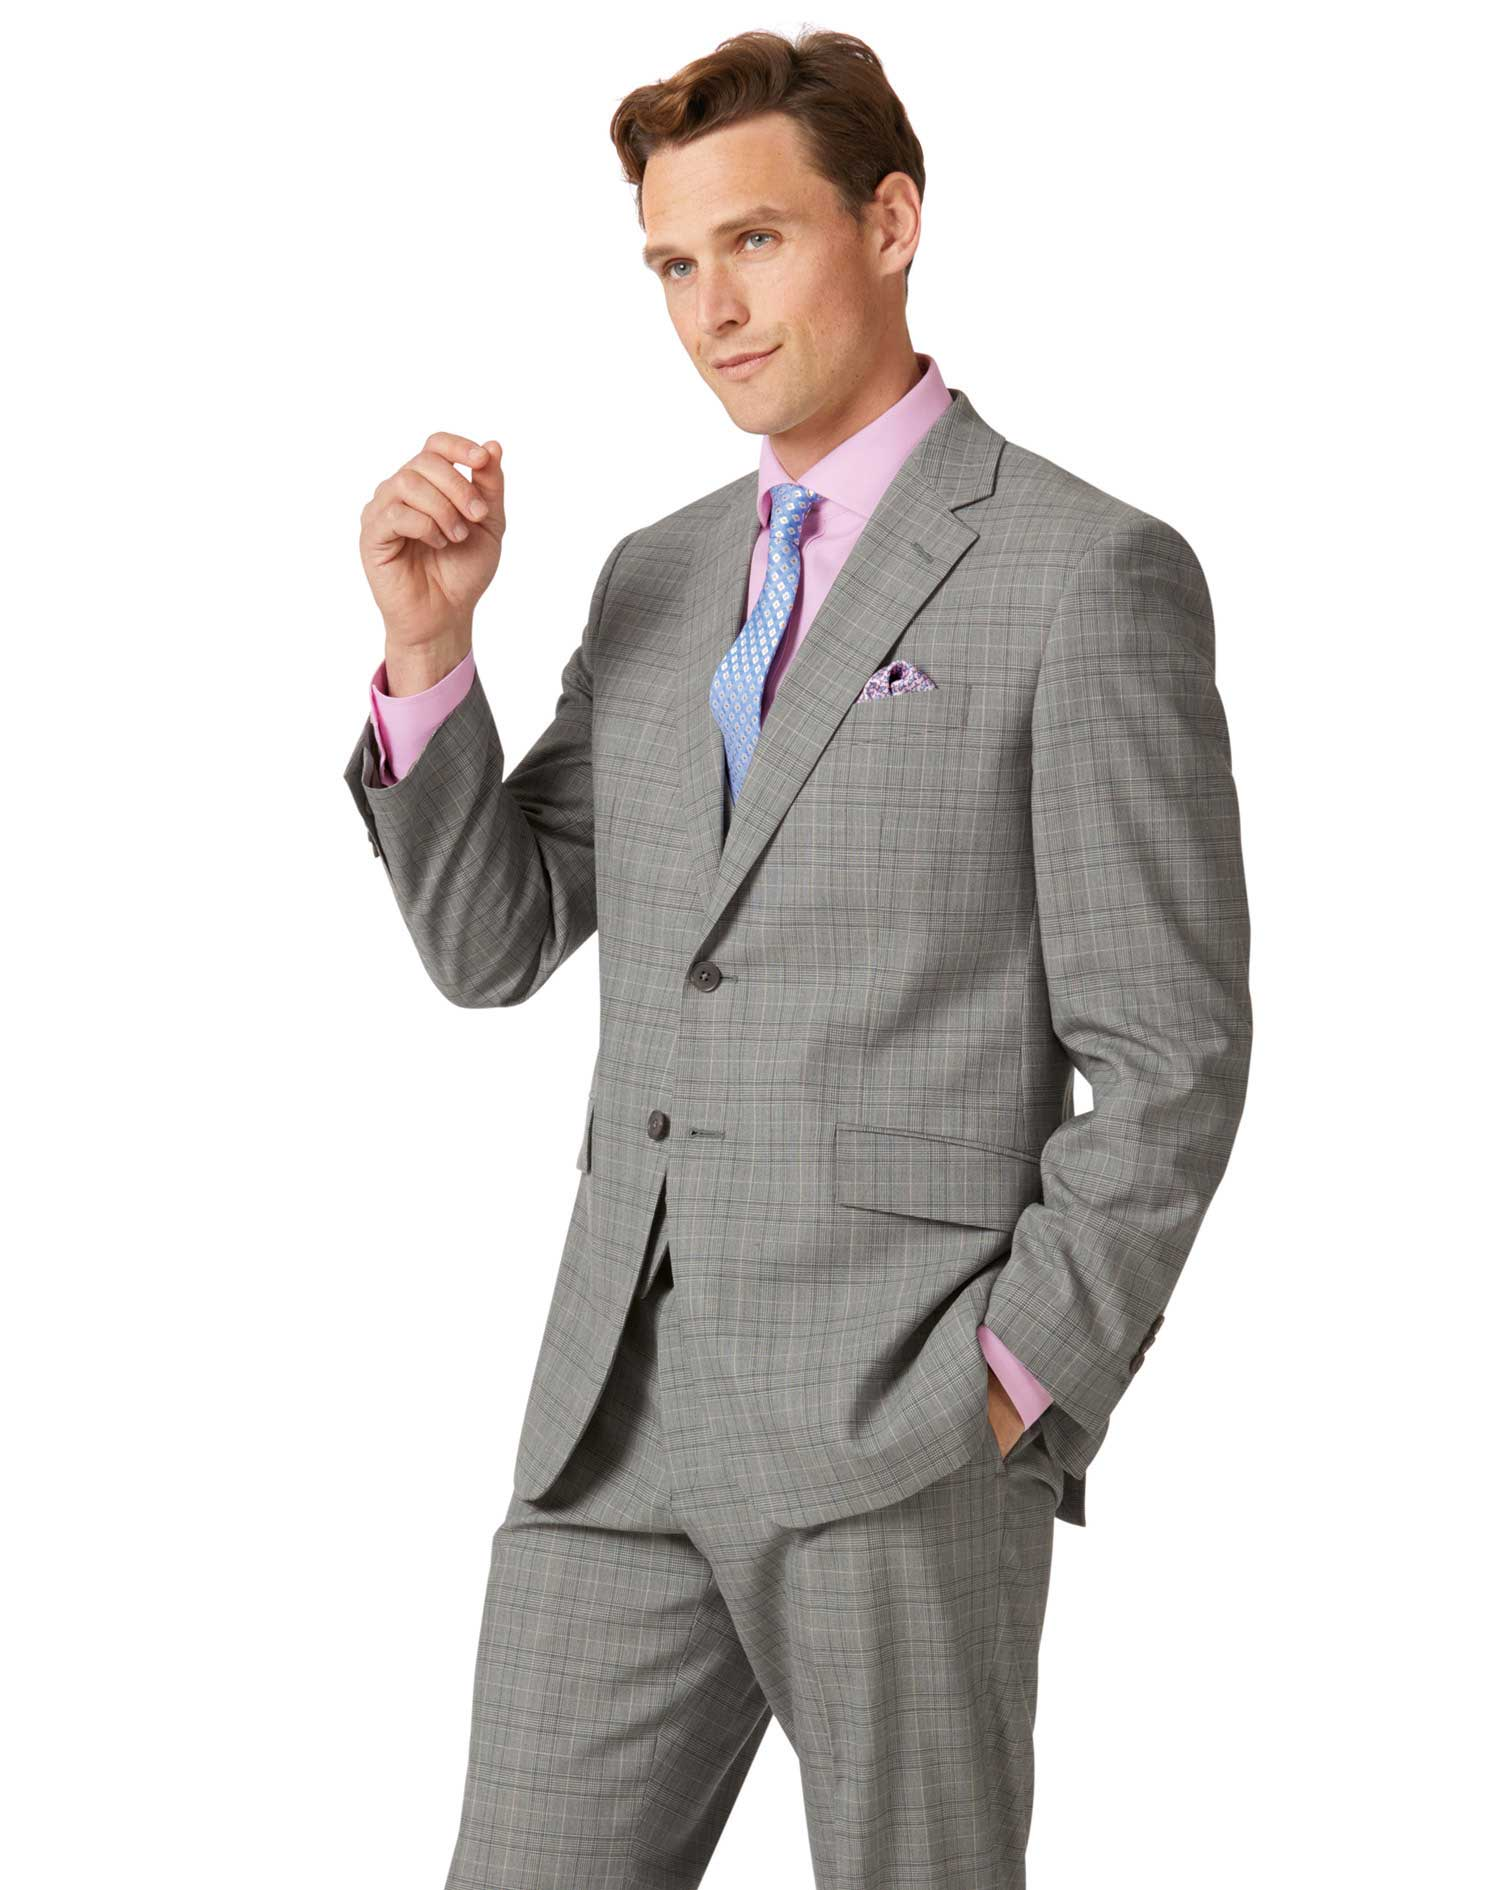 Grey Prince Of Wales Classic Fit Panama Business Suit Wool Jacket Size 44 Short by Charles Tyrwhitt